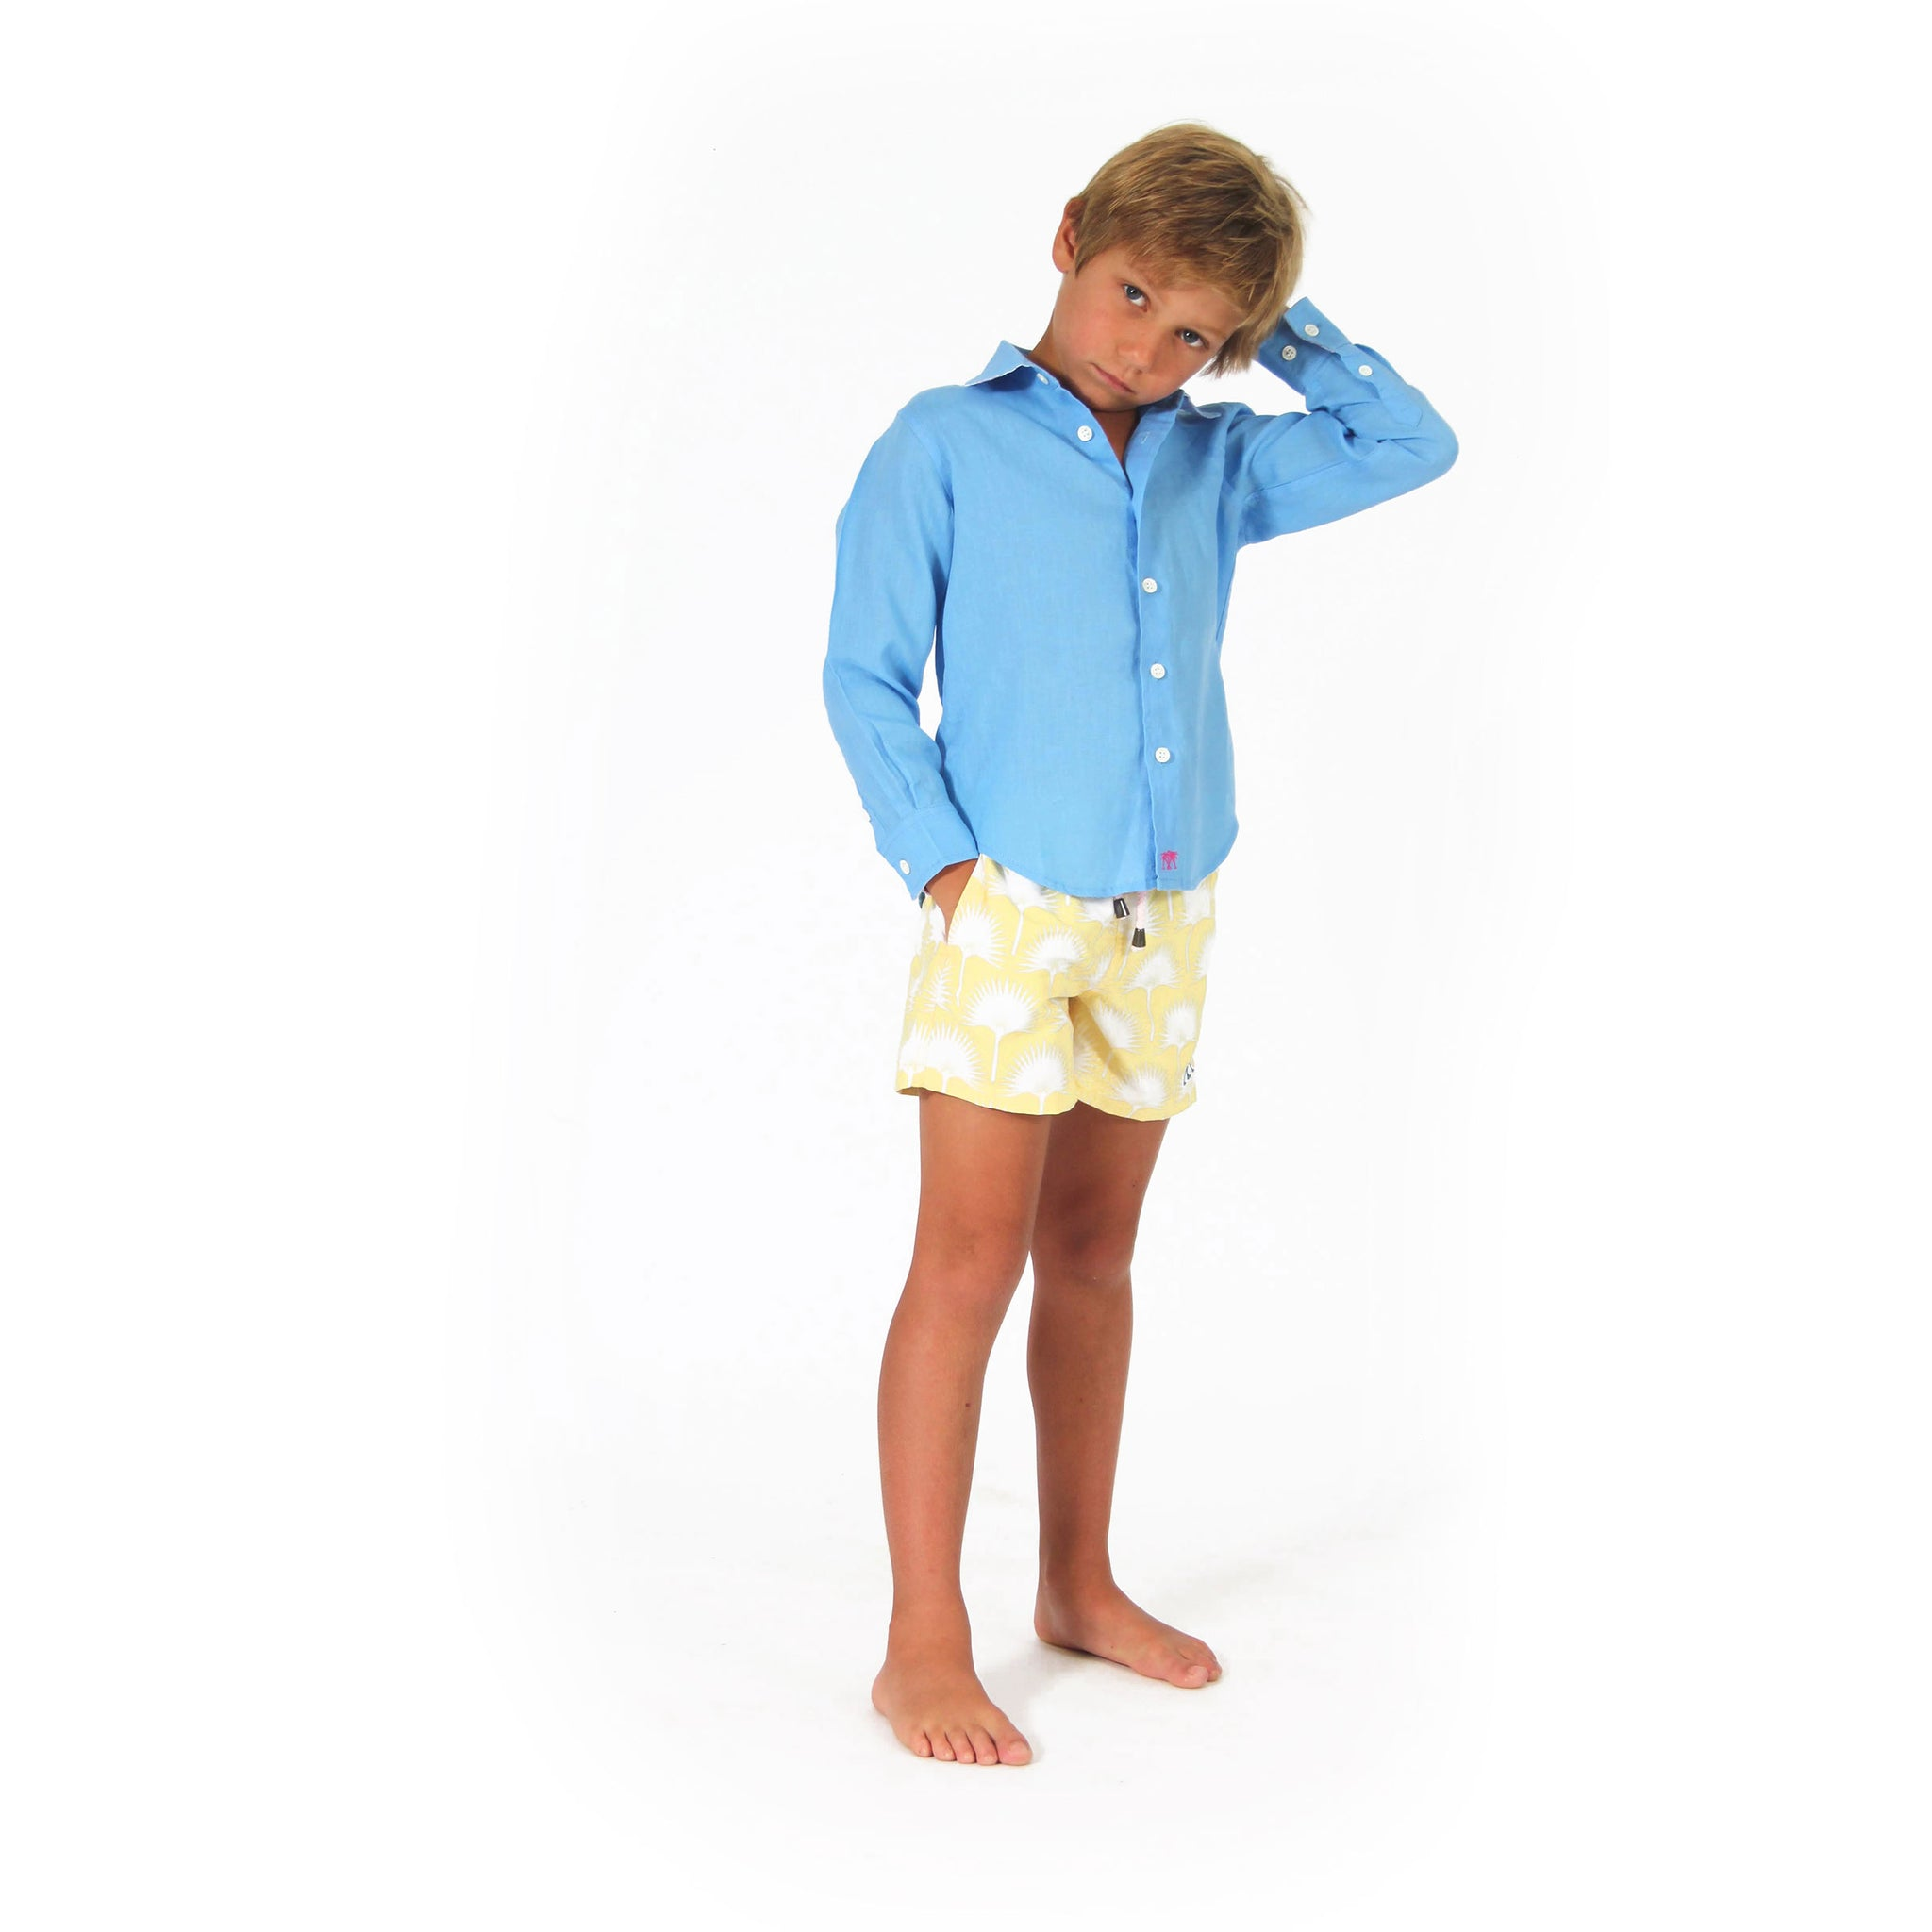 a7c4f5693719a Boys swim trunks : FAN PALM - YELLOW with french blue linen shirt, front